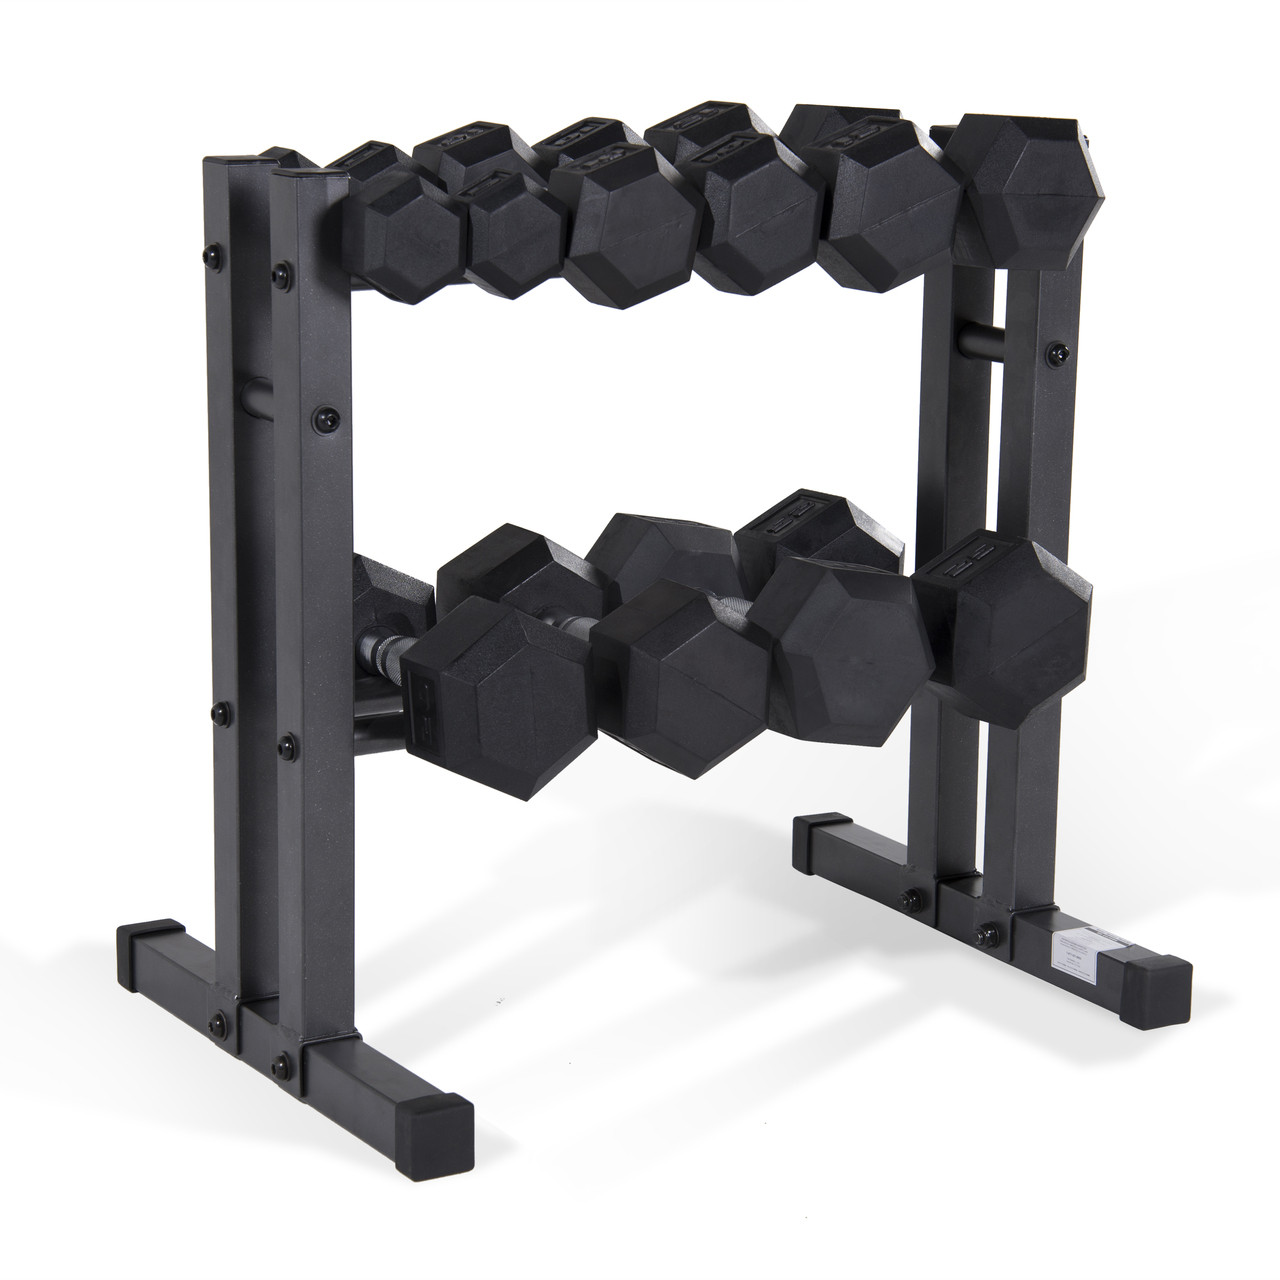 99b2fa29f69 CAP Barbell 150 lb Rubber Dumbbell Set with Rack. Price   199.99. Image 1